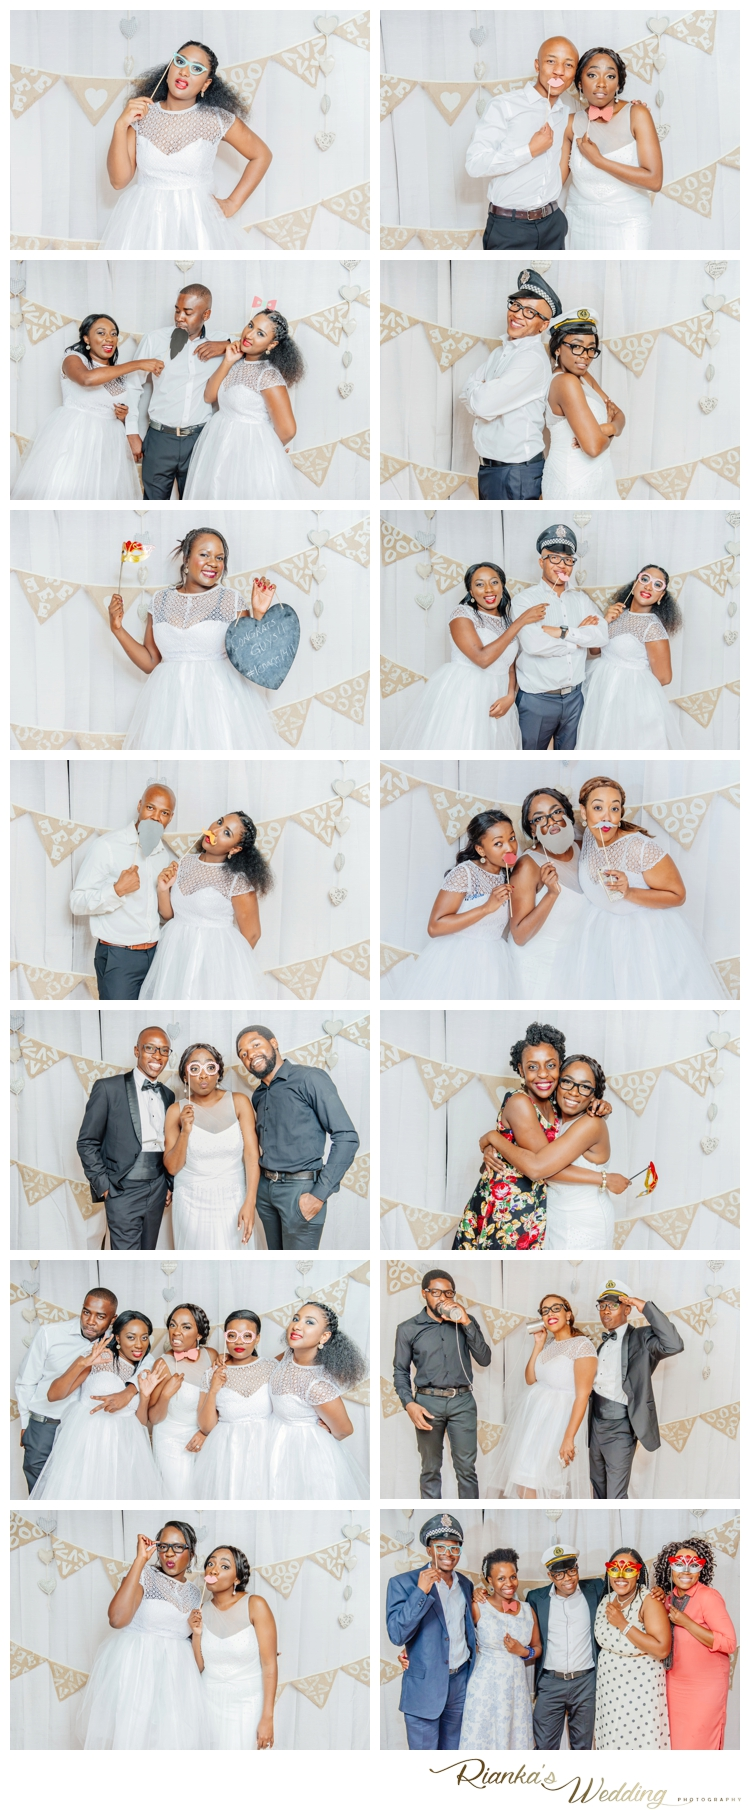 riankas wedding photography oakfield farm wedding sanana lerato wedding00093